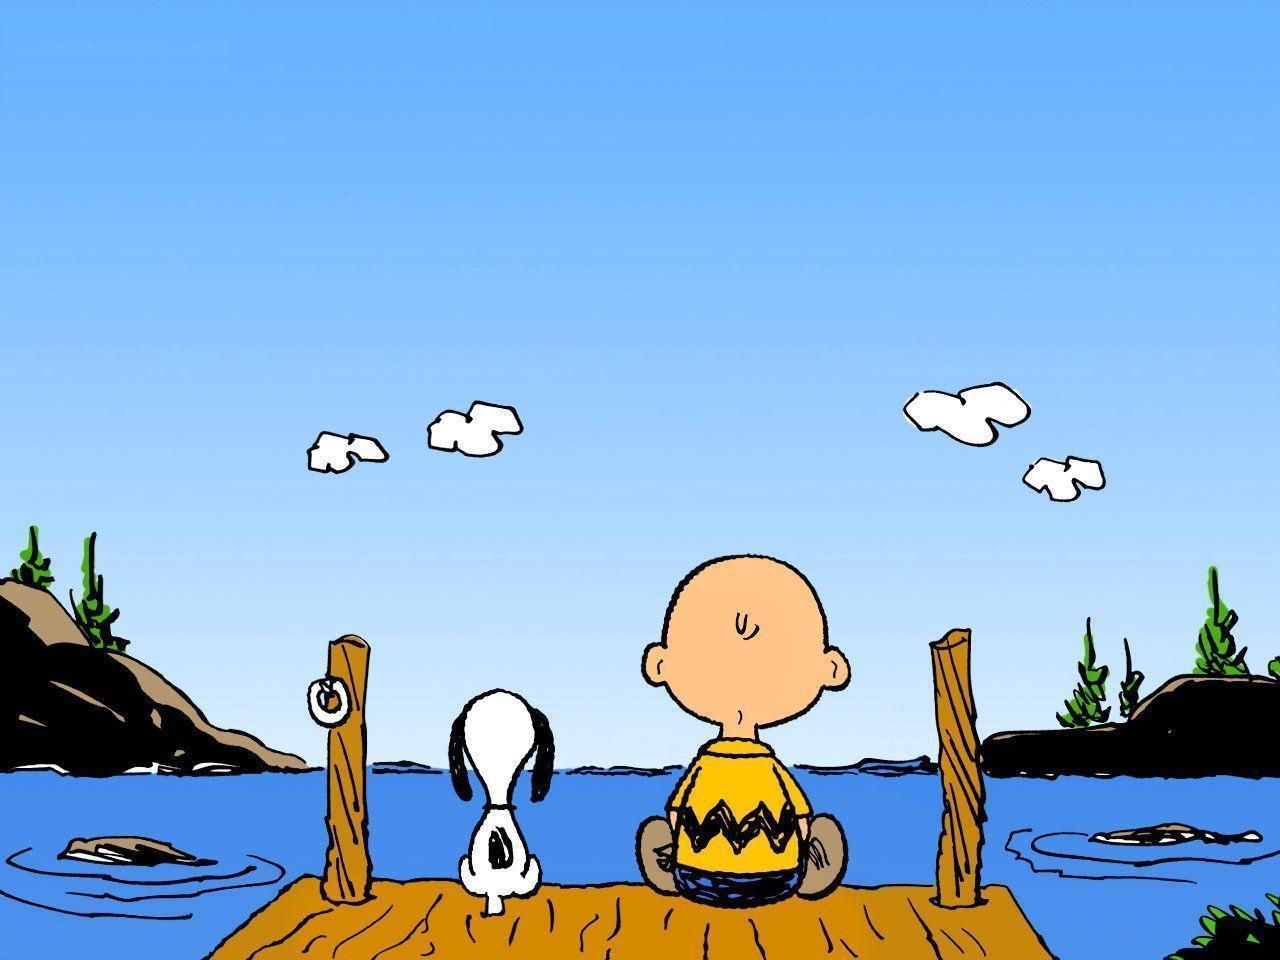 Download Snoopy Charlie Wallpaper 1280x960 | Wallpoper #274817